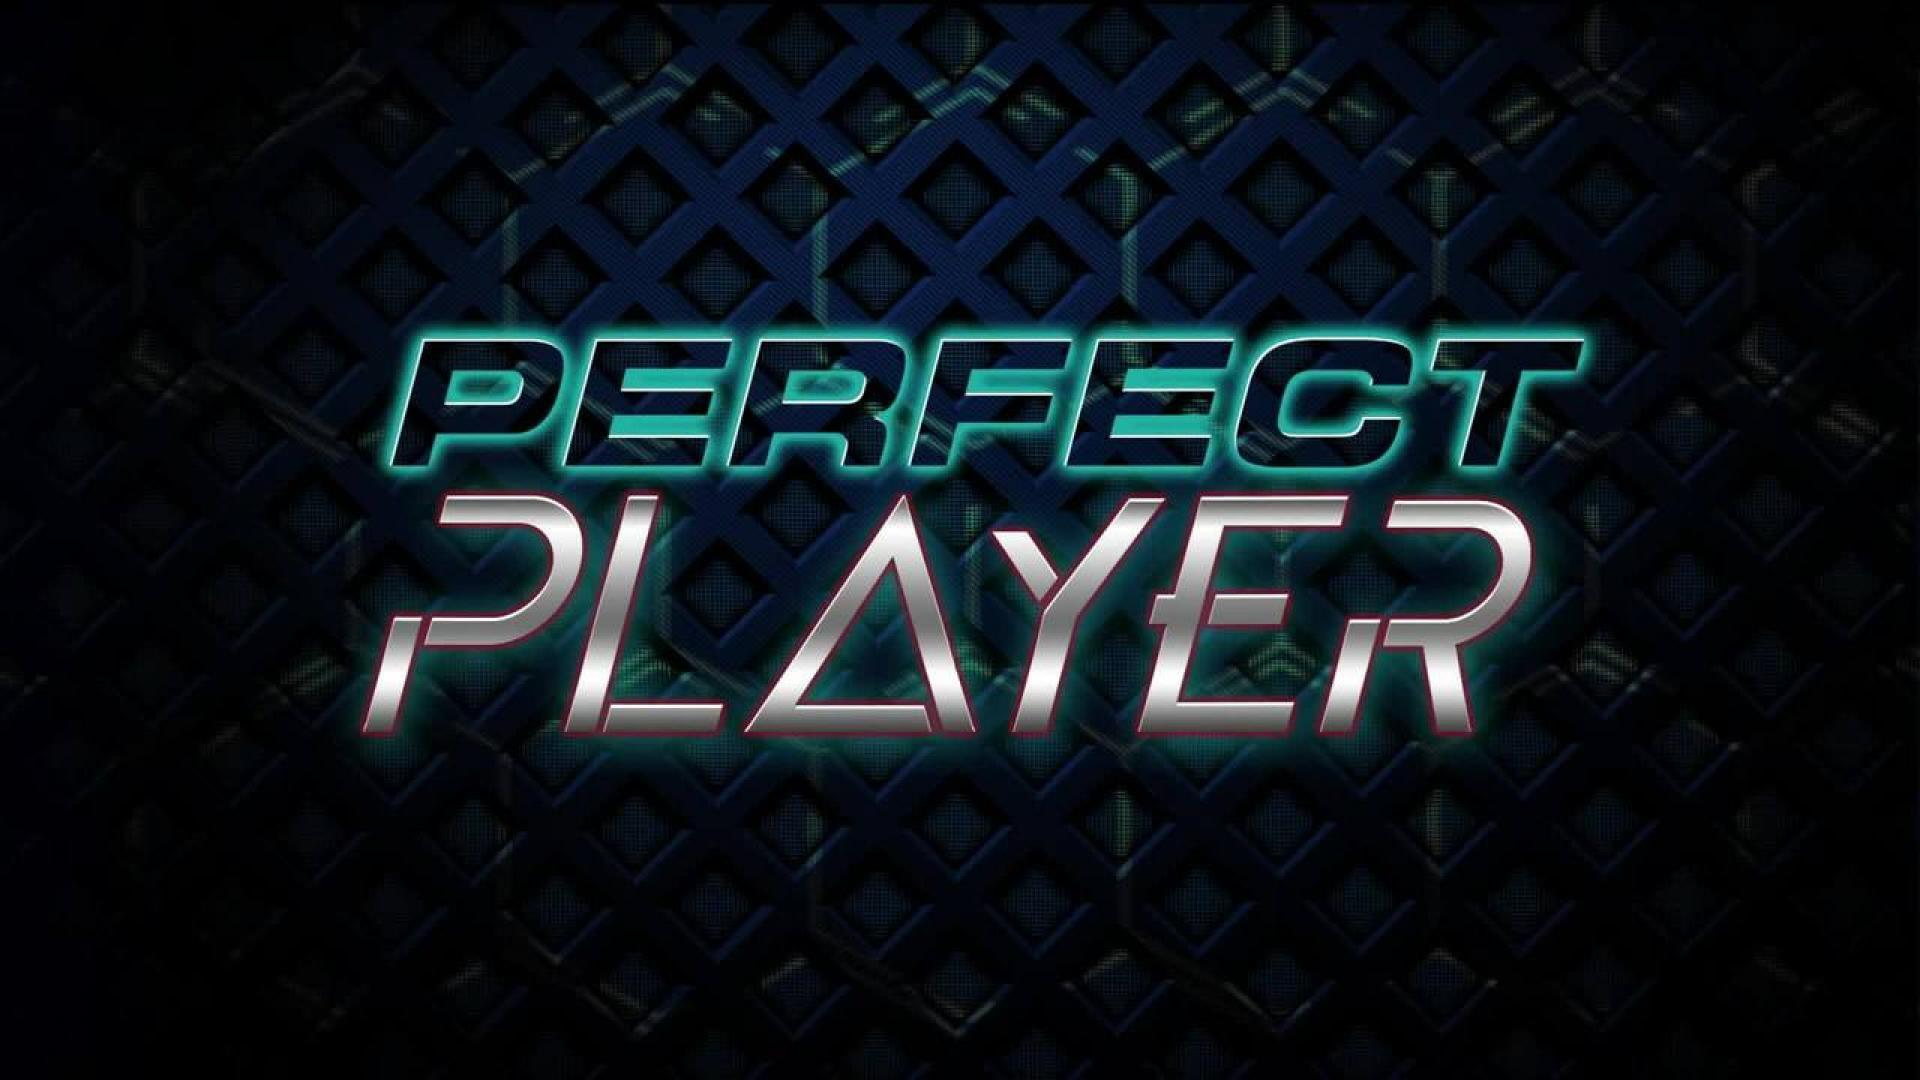 Picture Perfect Perfect Player Help Nba Tv Create The Ultimate Nba Star Nba